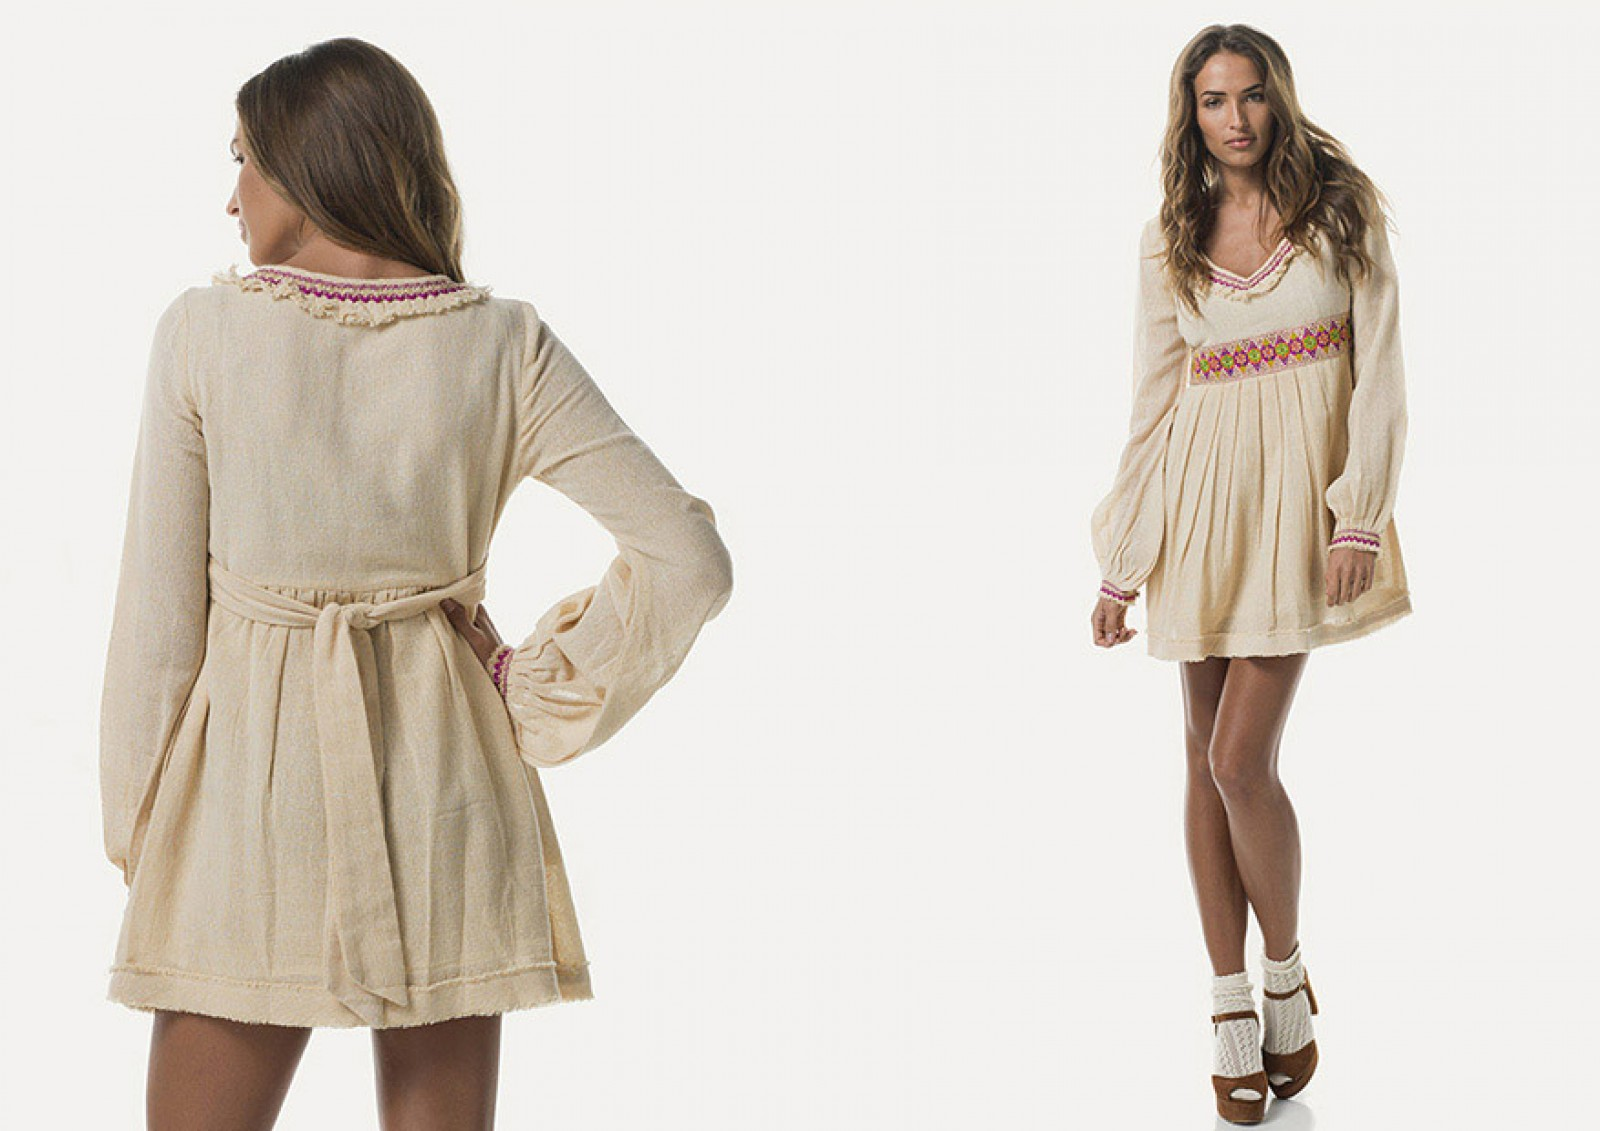 Vista delantera del Velvet Queen Dress Beige; ideal vestido vaquero floral.